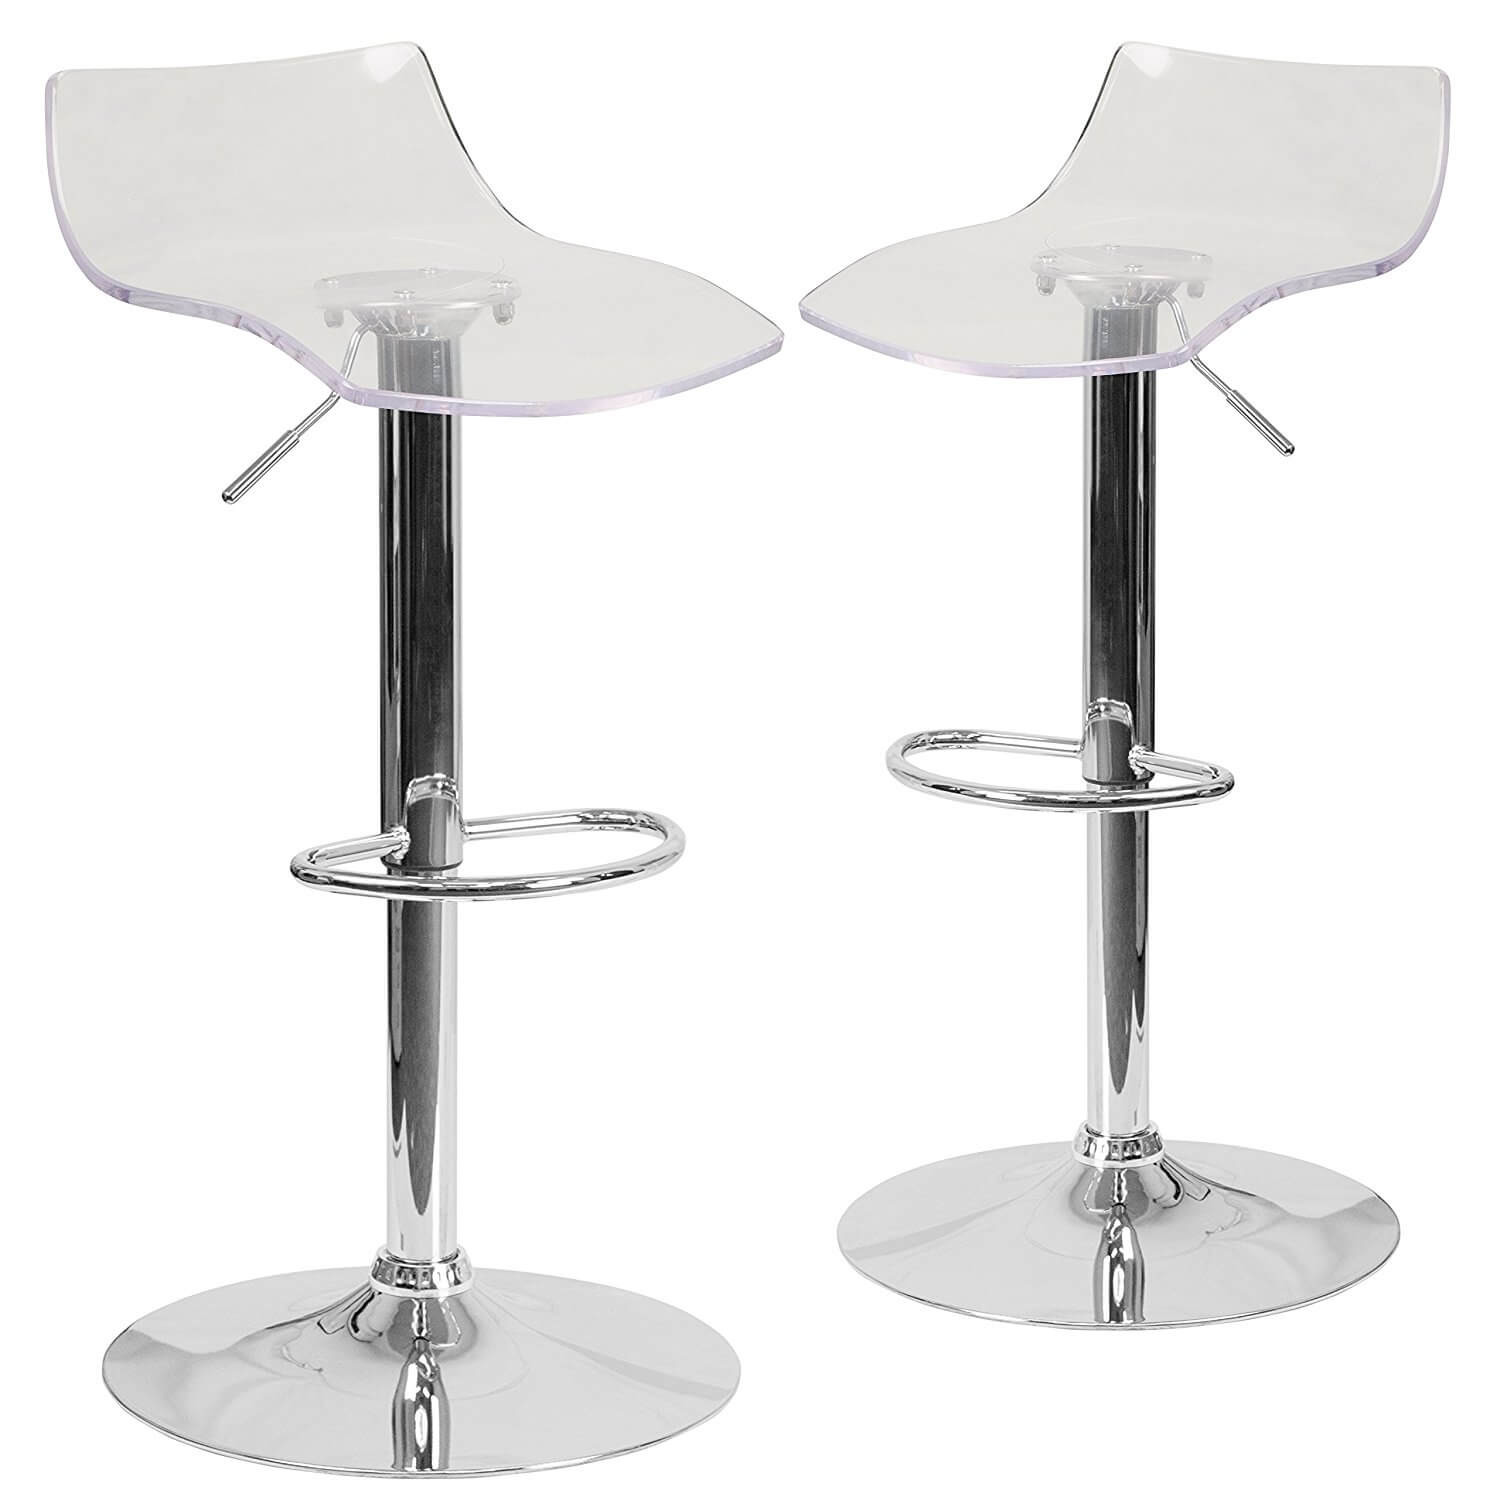 Charmant Adjustable Clear Bar Stools, Pack Of 2